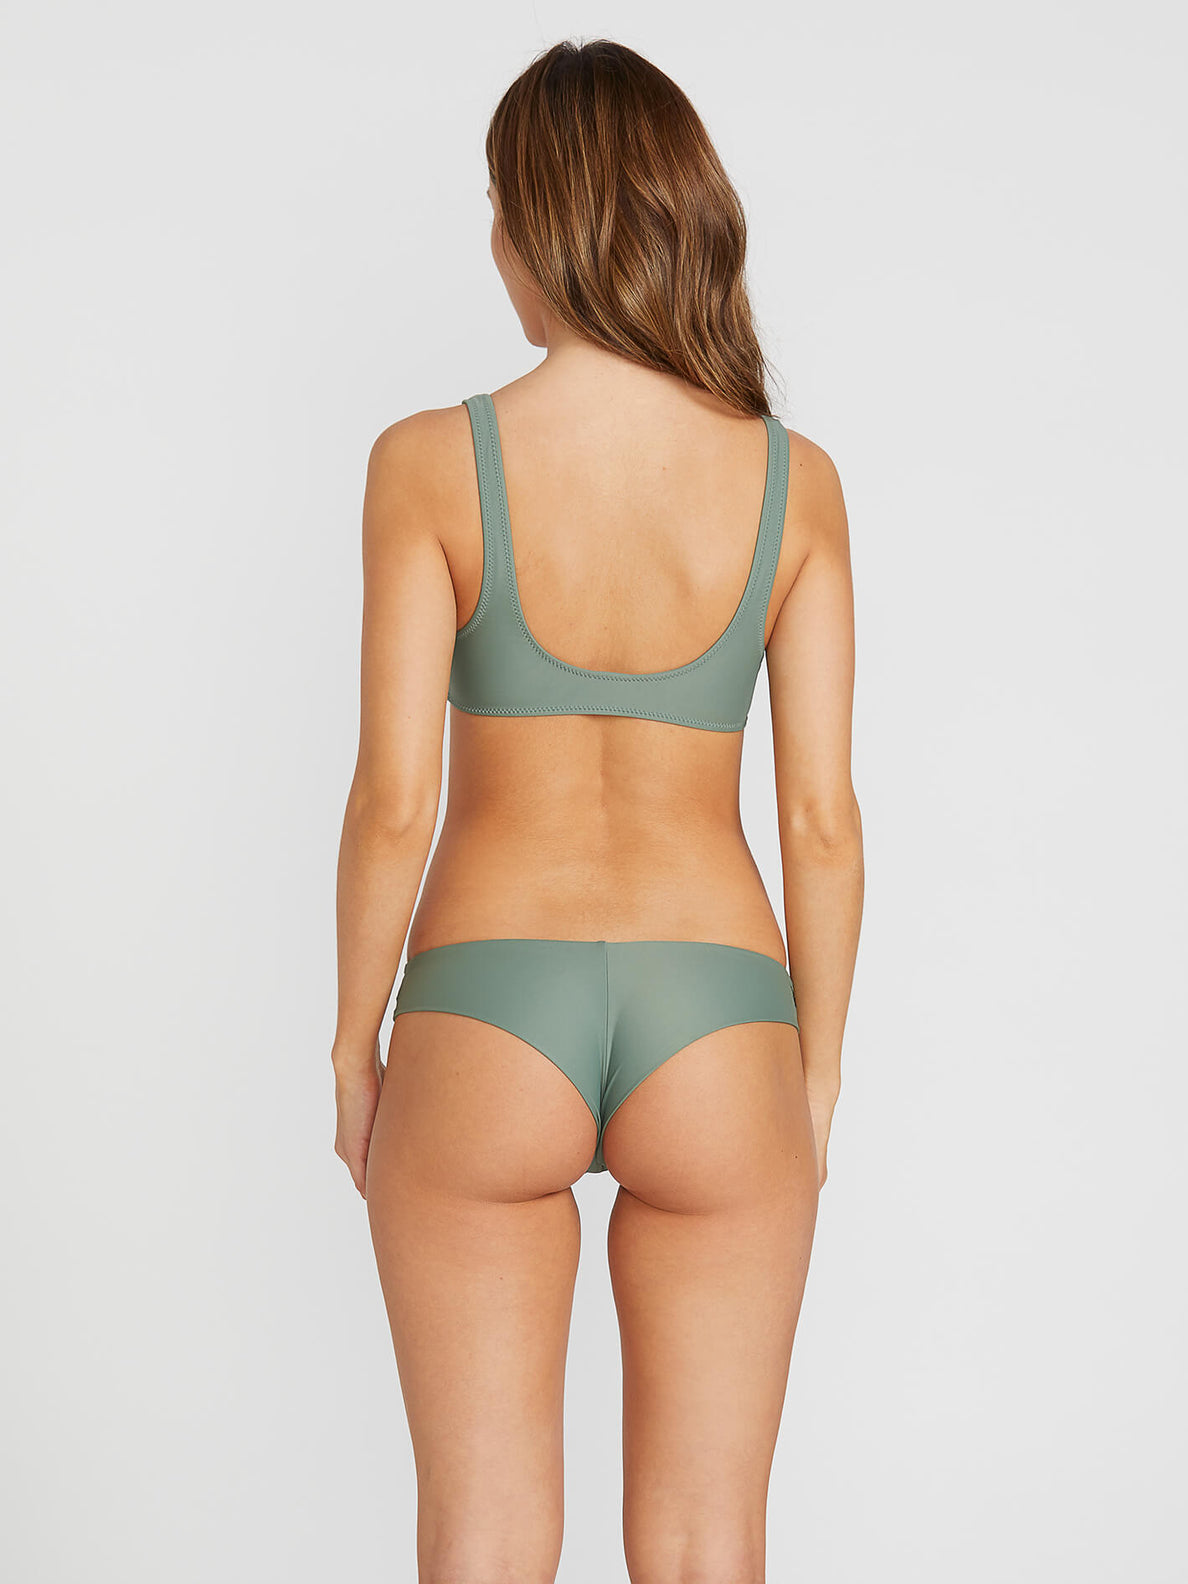 Simply Solid Cheeky Bottoms - Dark Green (O2141900_DKG) [1]